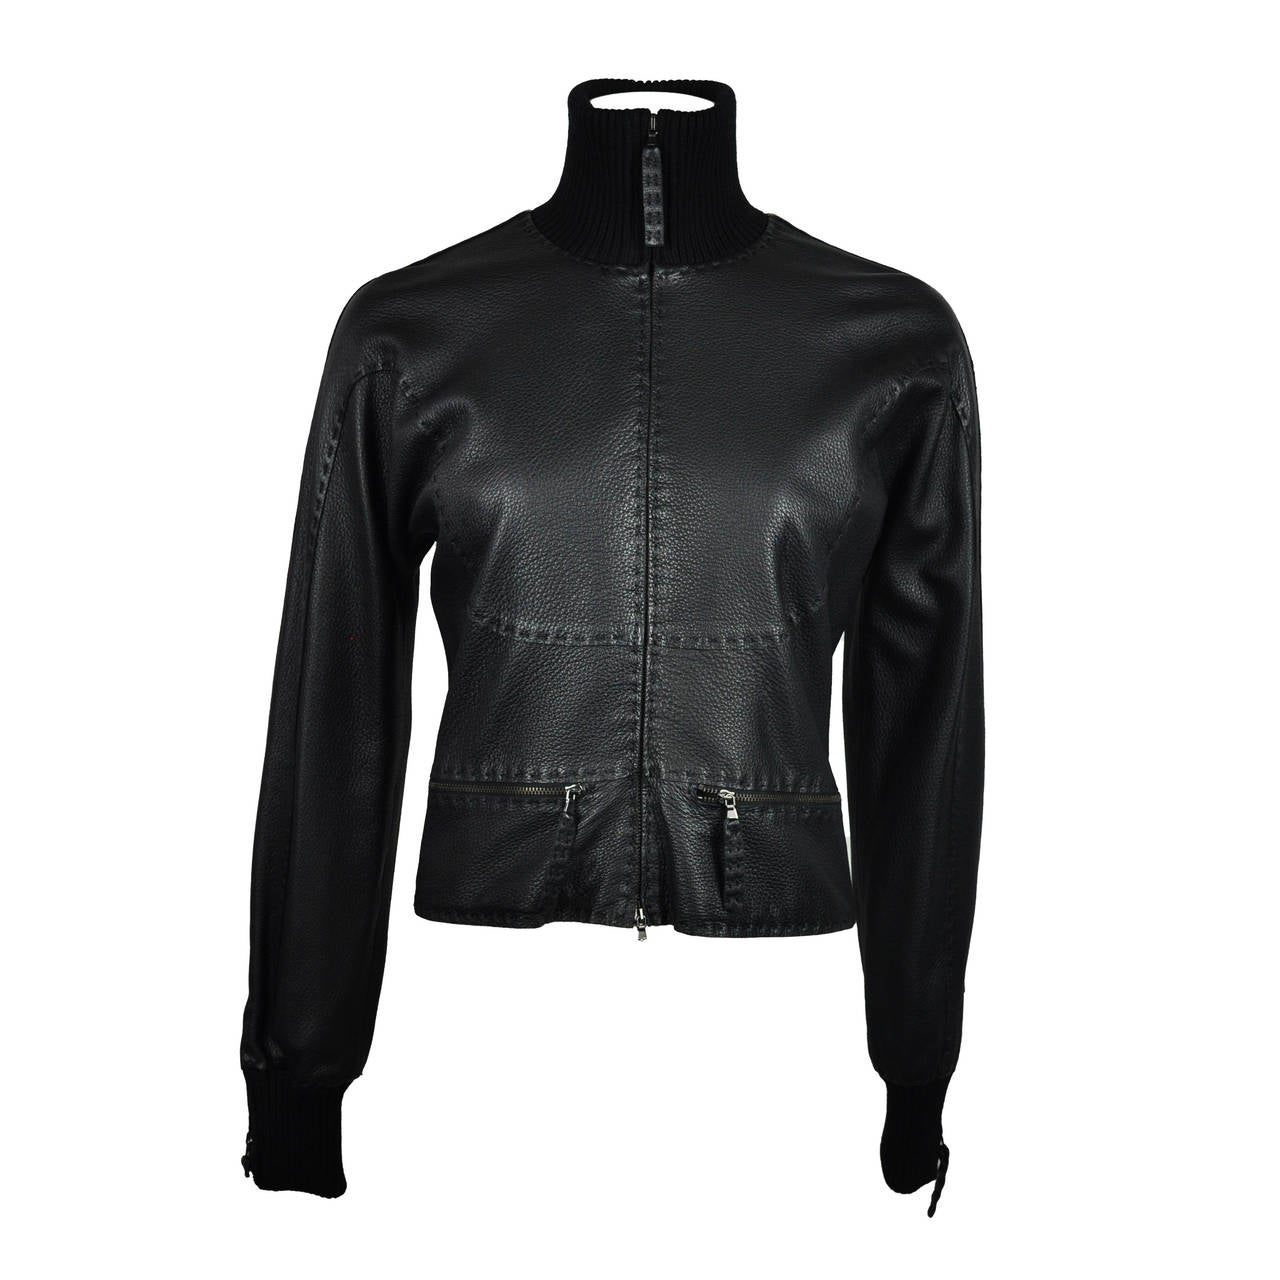 Jean Paul Gaultier Black Deer Leather Bomber Jacket 1